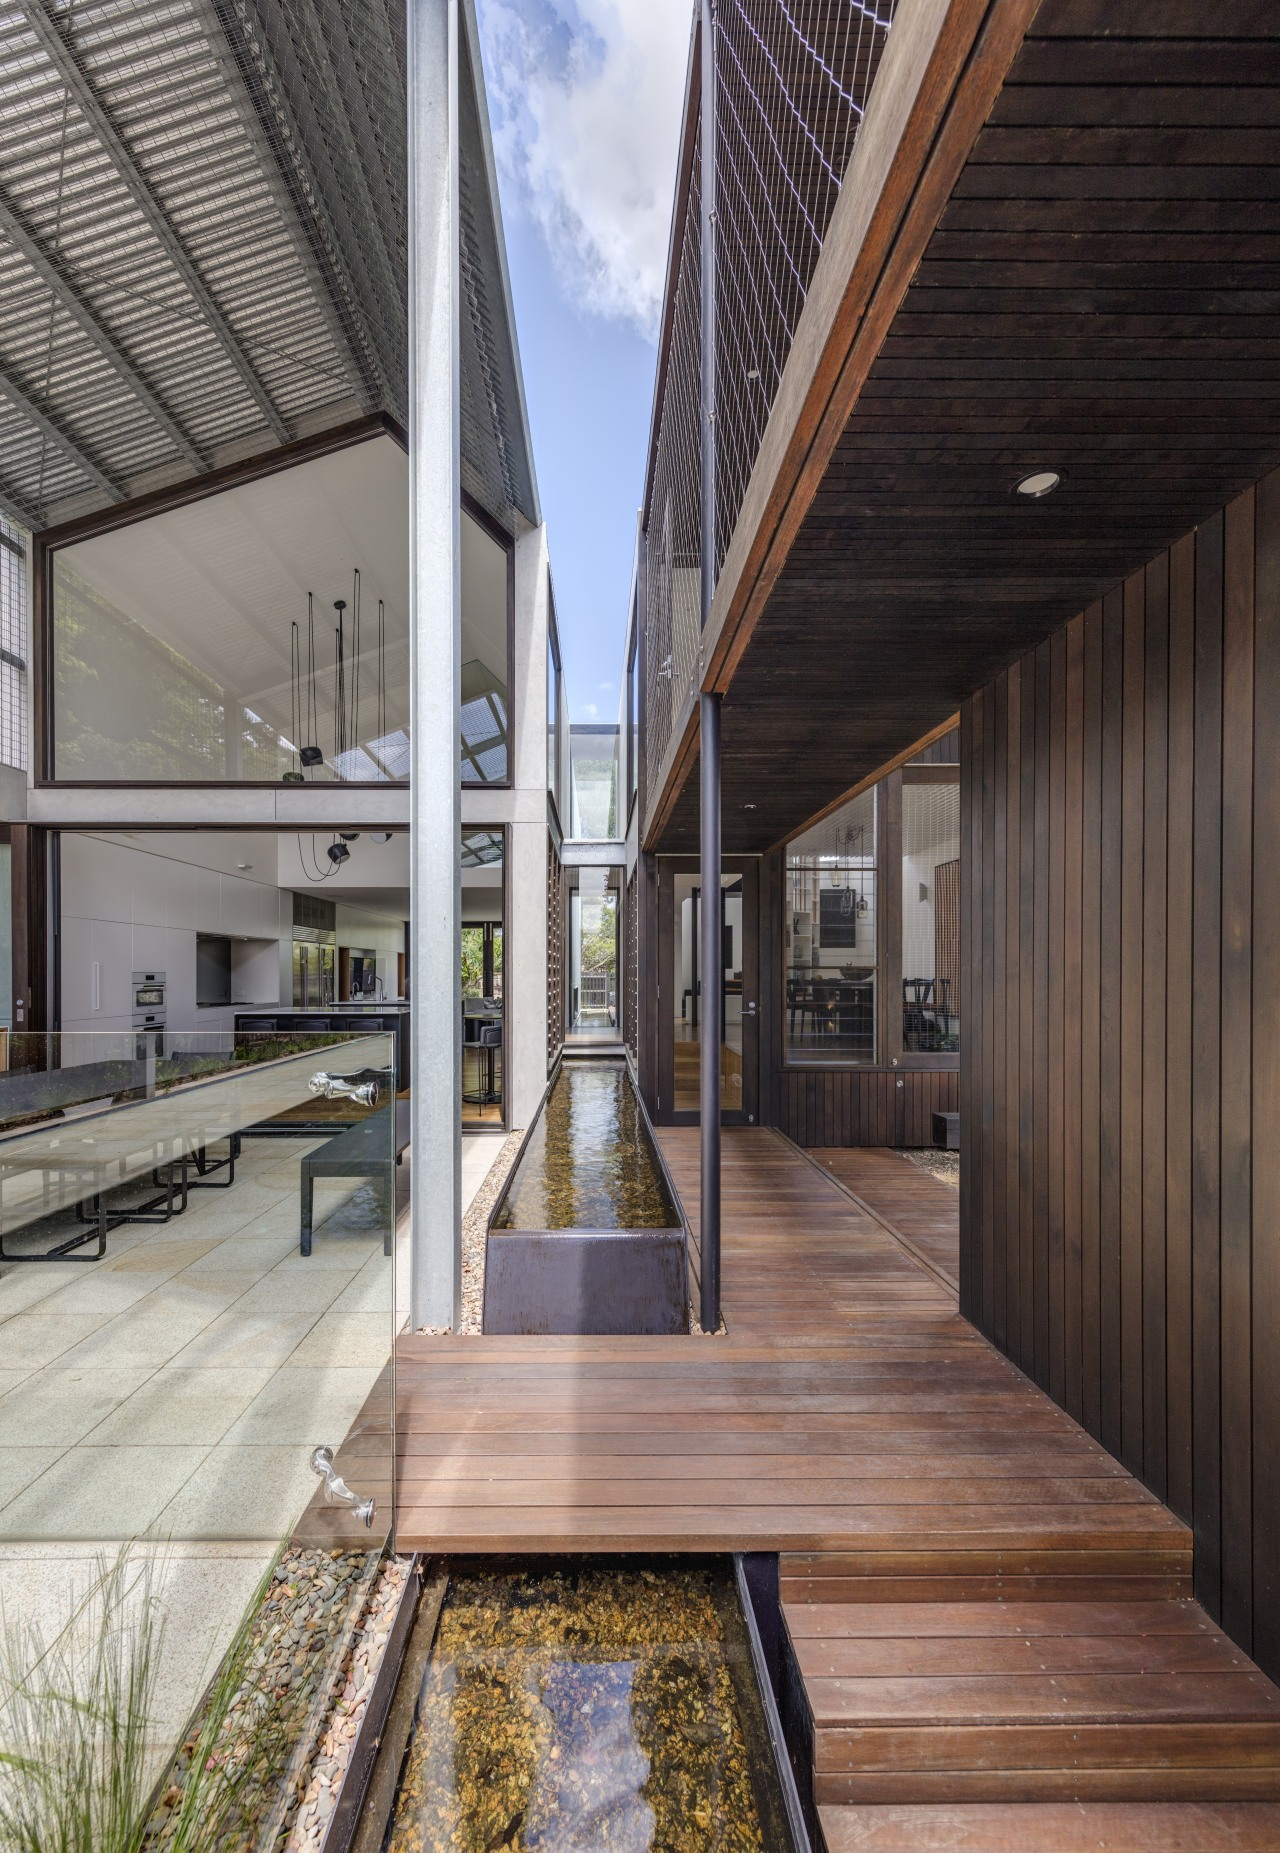 While the water running between the two wings home, architecture, courtyard, facade, home, house, interior design, two wing home, CplusC Architectural Workshop